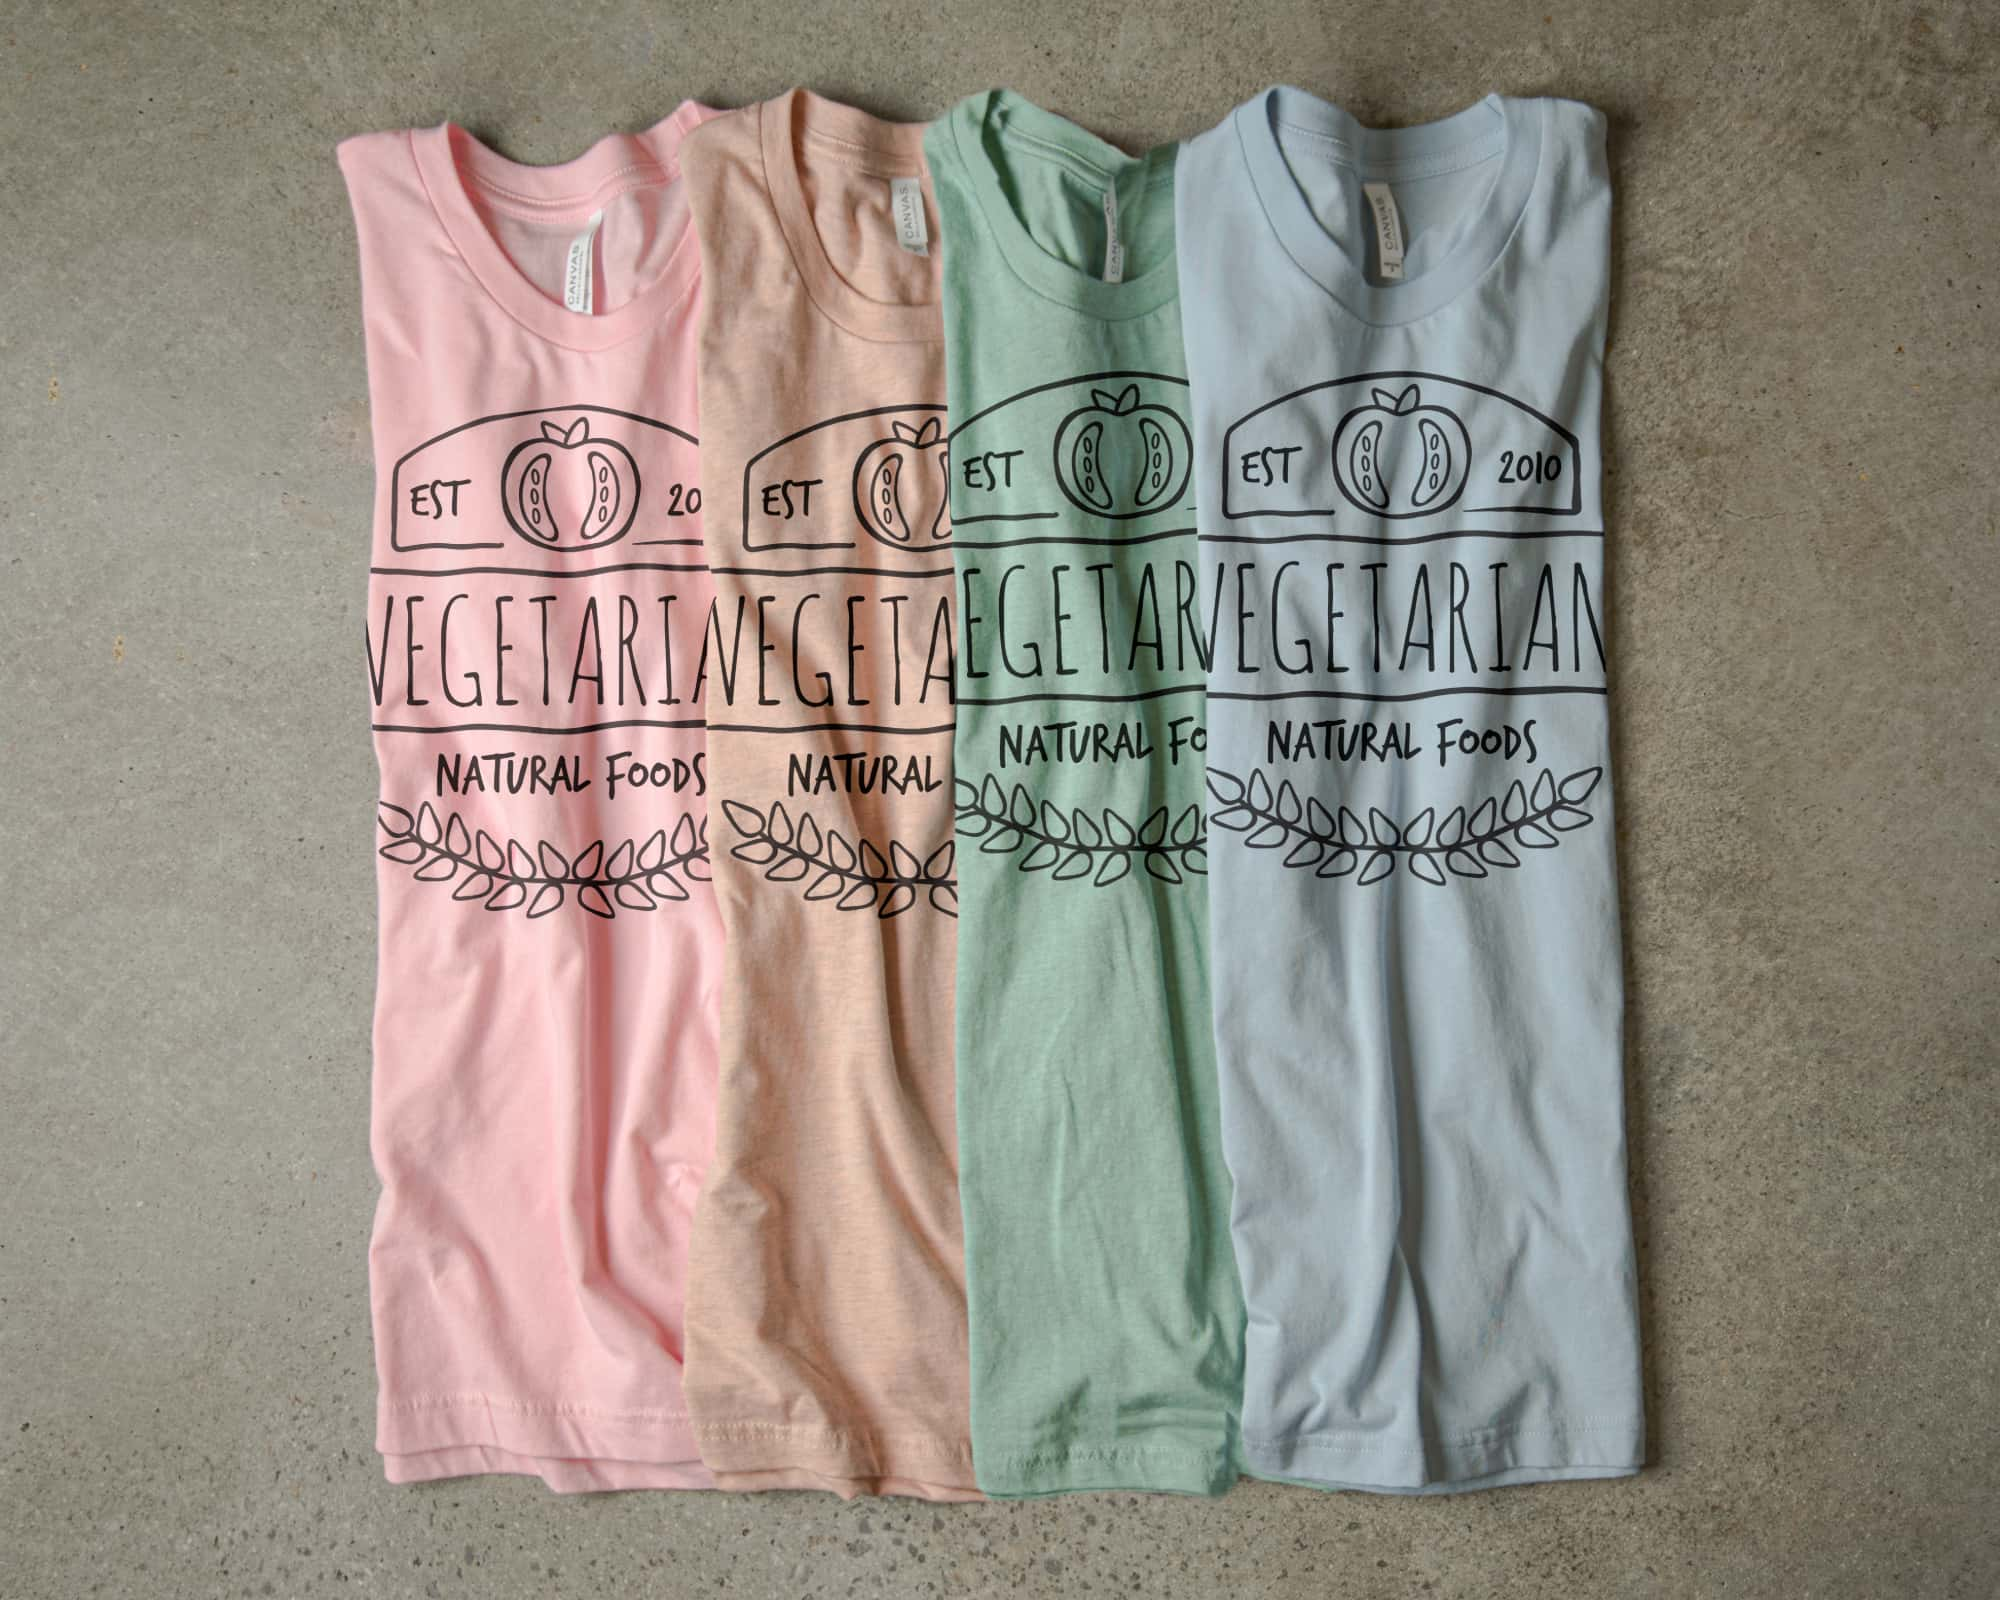 Our pastel color pallet shown in various t-shirt colors with a monochromatic design.